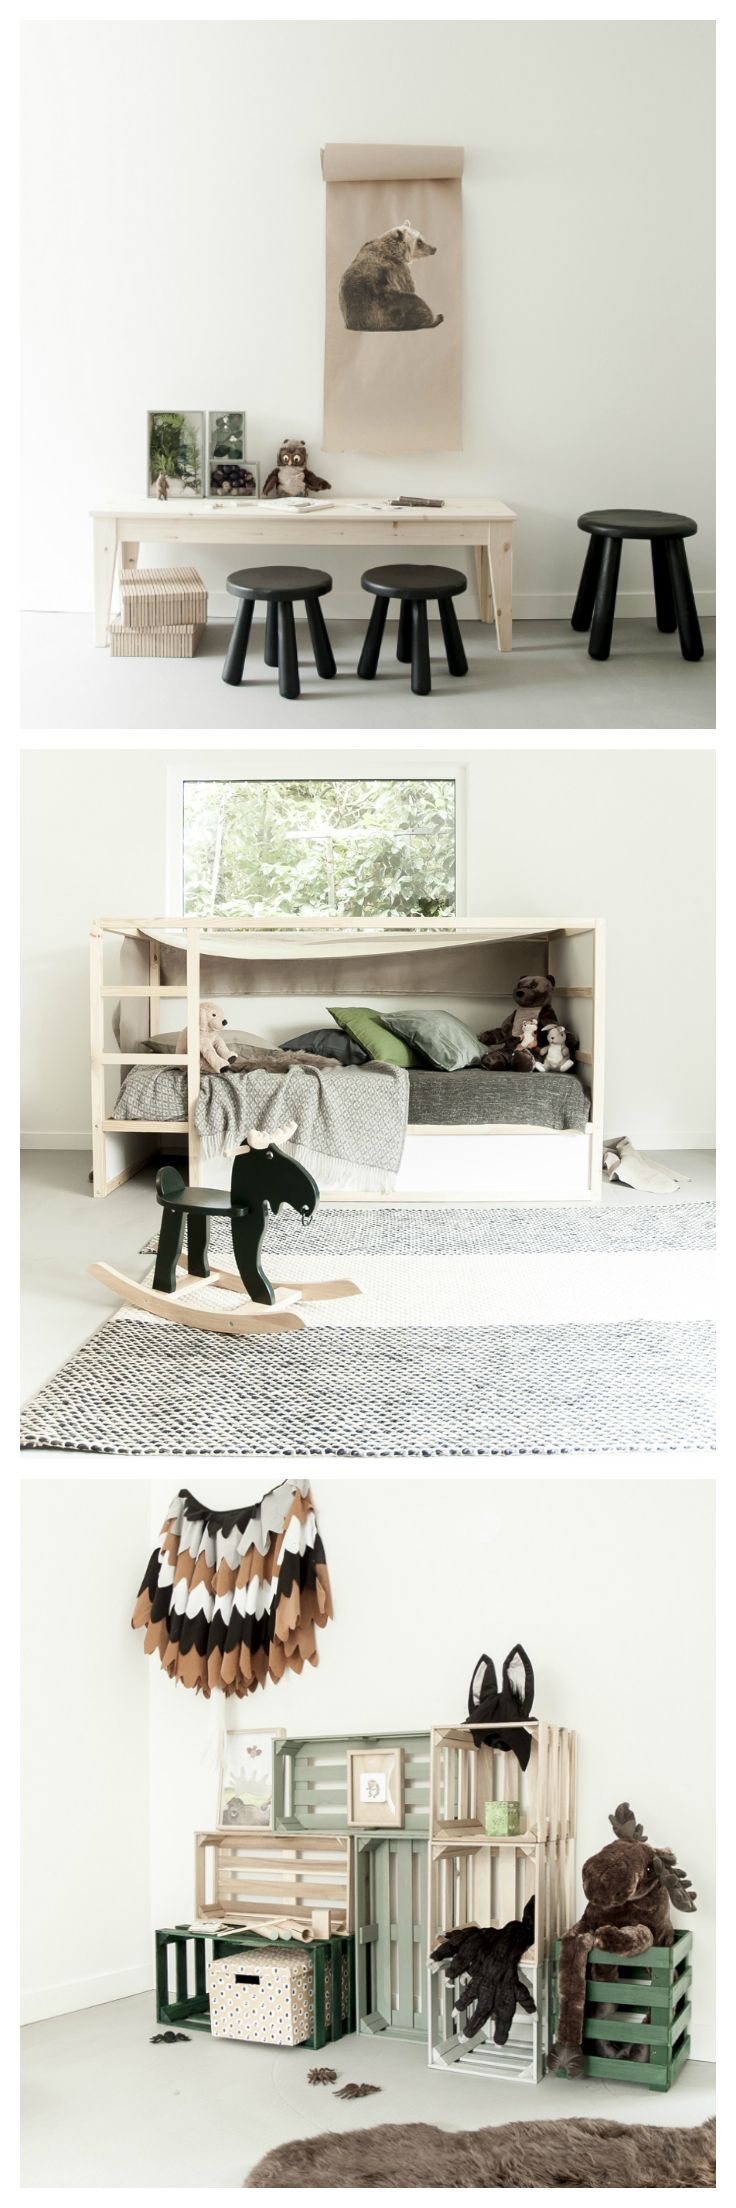 A kids room inspired by the forest - love the natural wood and the green tones